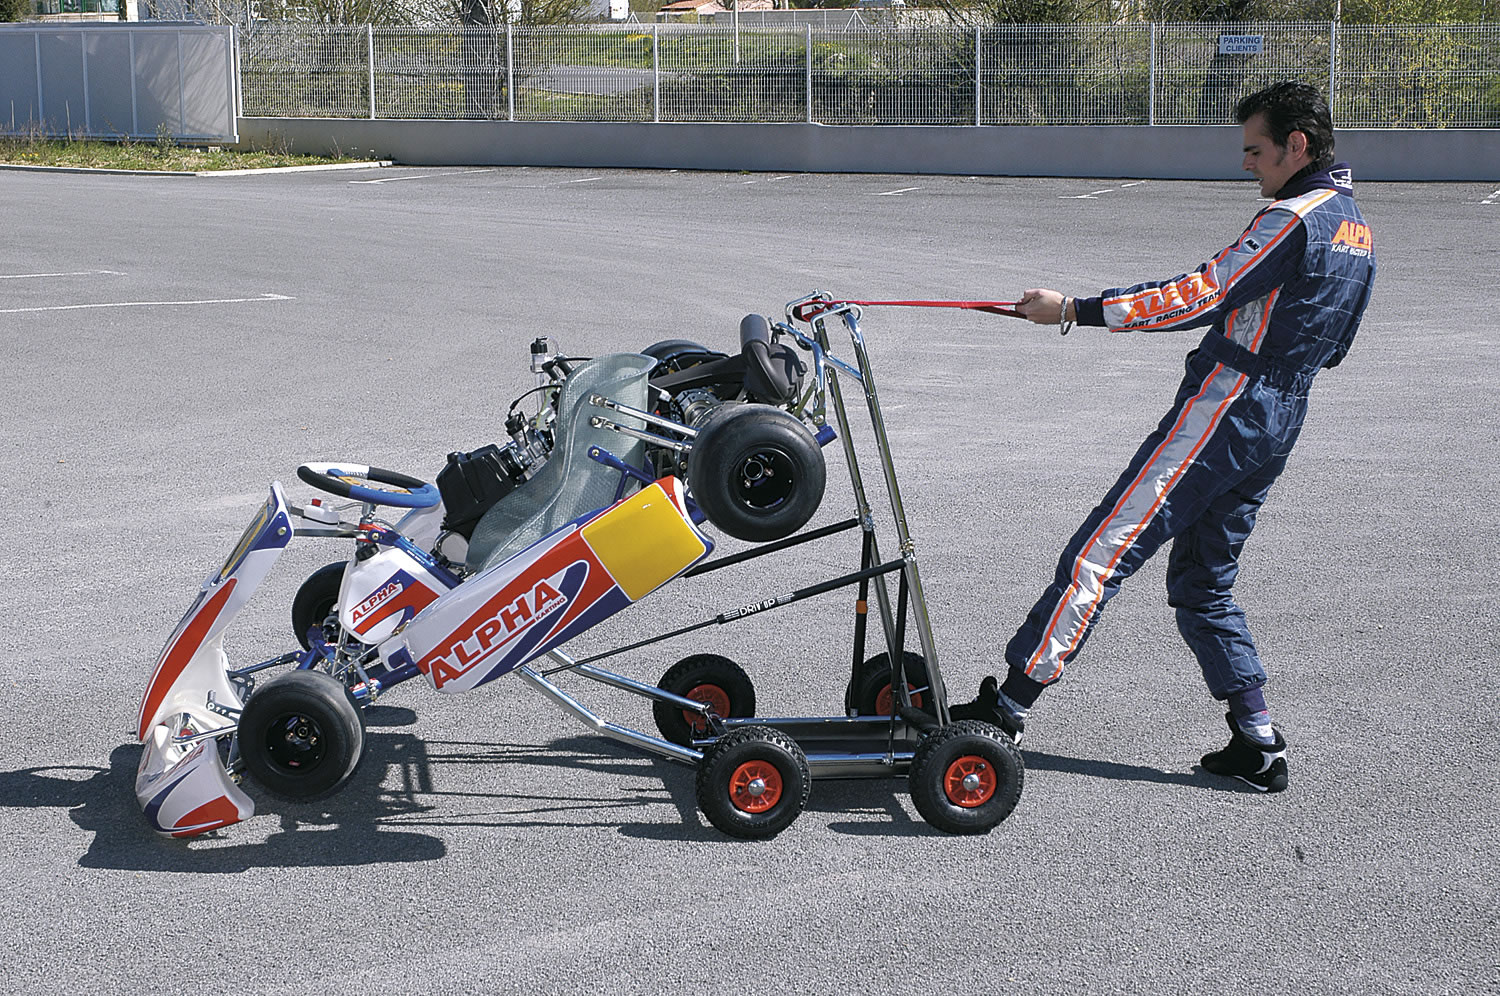 Sport Loisir Chassis Manutention Kart